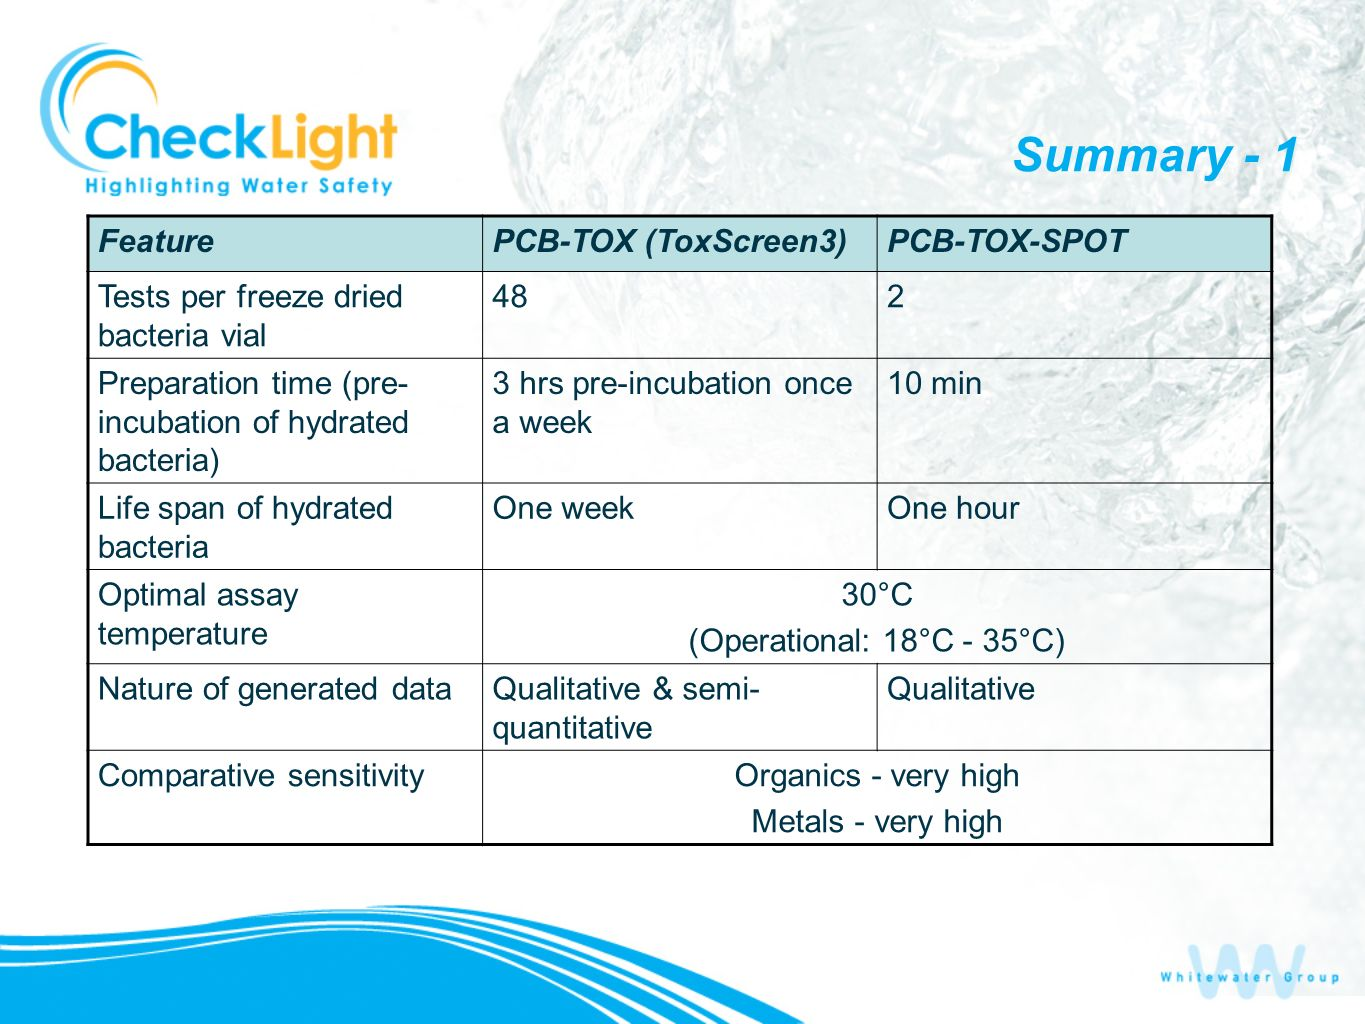 Summary - 1 PCB-TOX-SPOT PCB-TOX (ToxScreen3) Feature 2 48